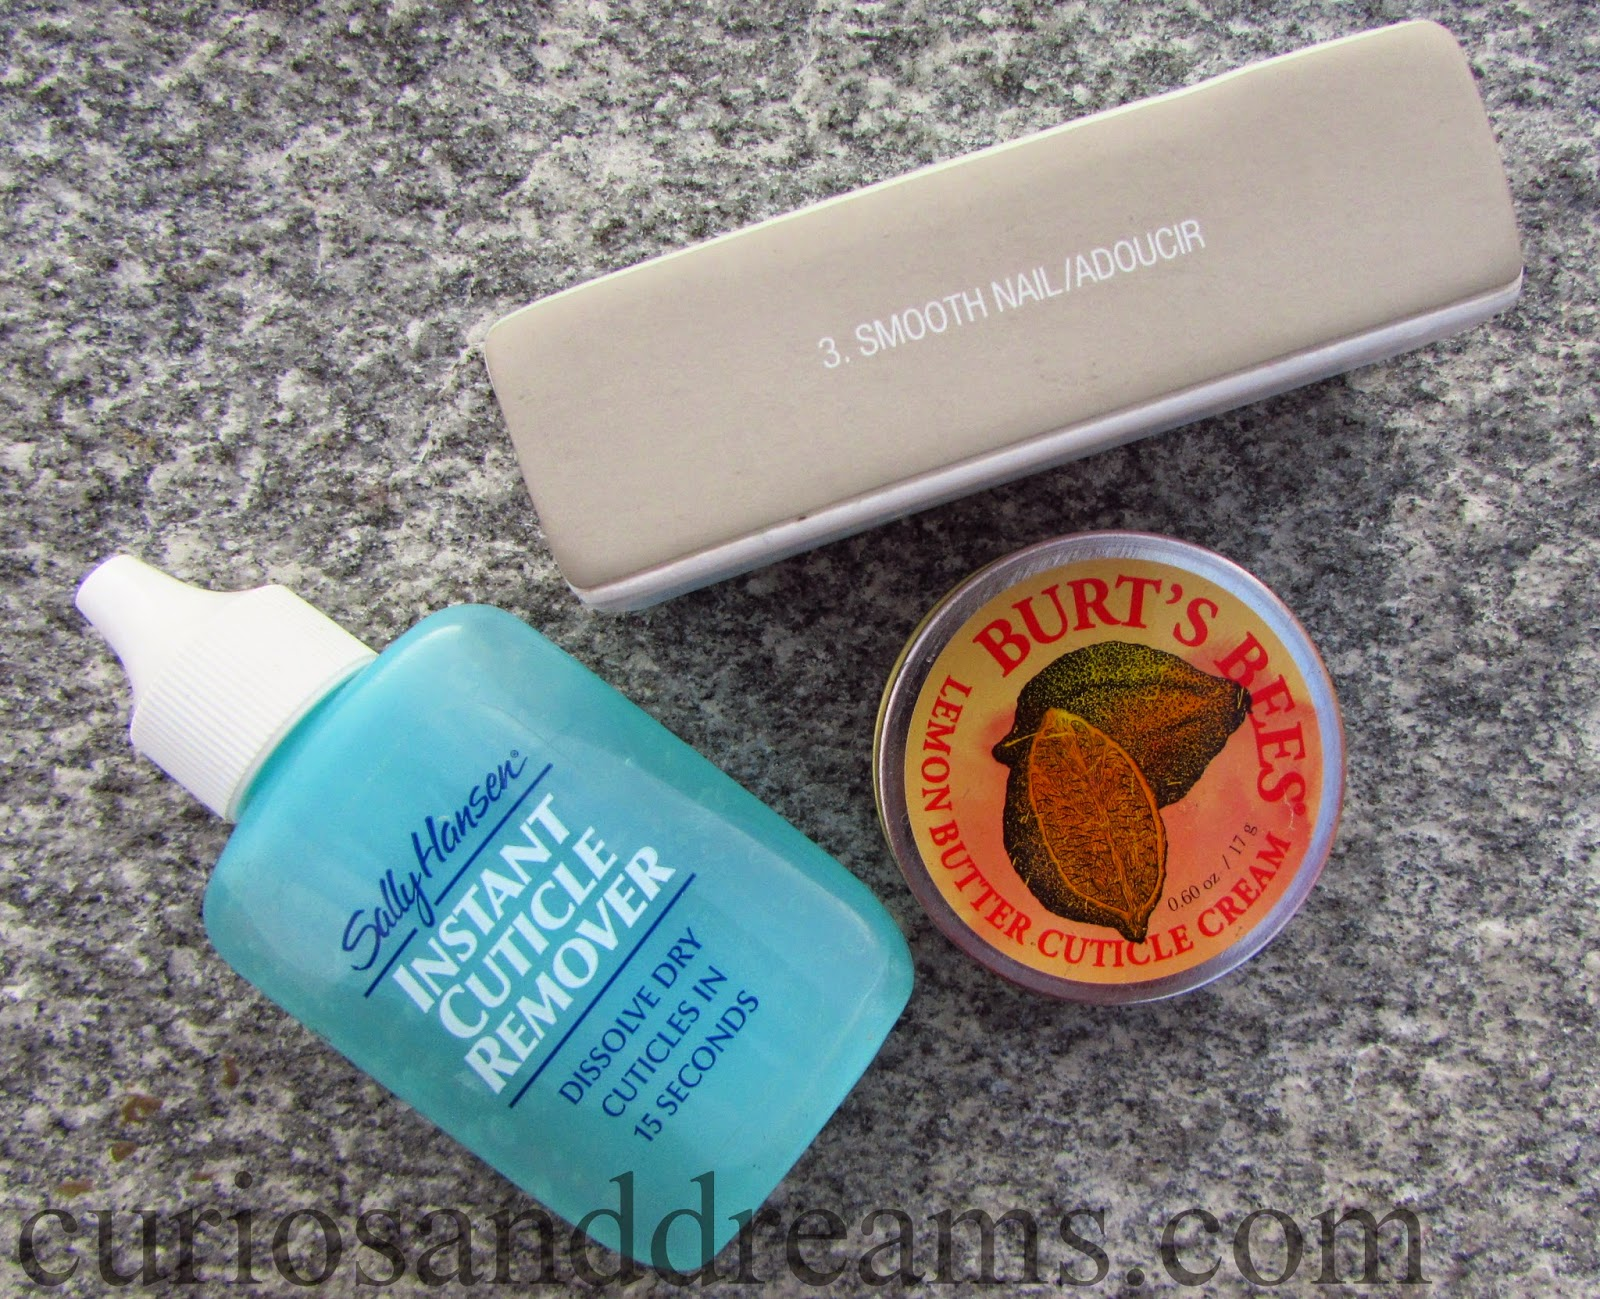 My Current Nail Care Routine, nail care, nail care routine, my nail care routine